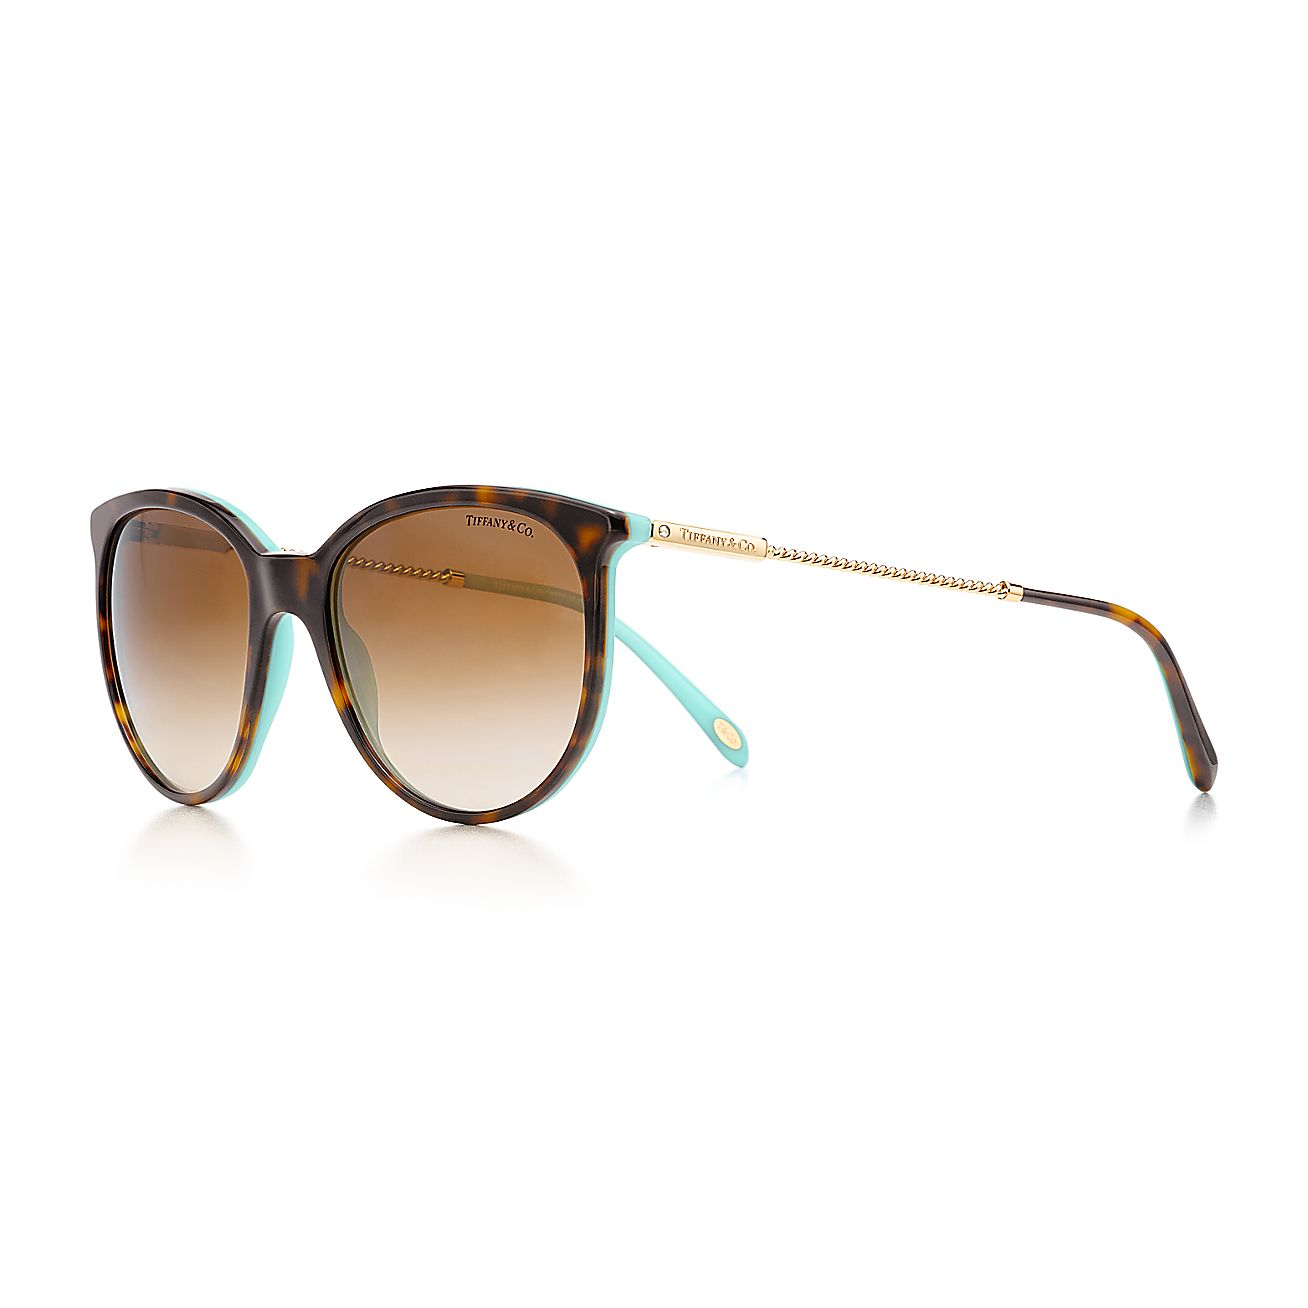 Tiffany Twist:Round Sunglasses